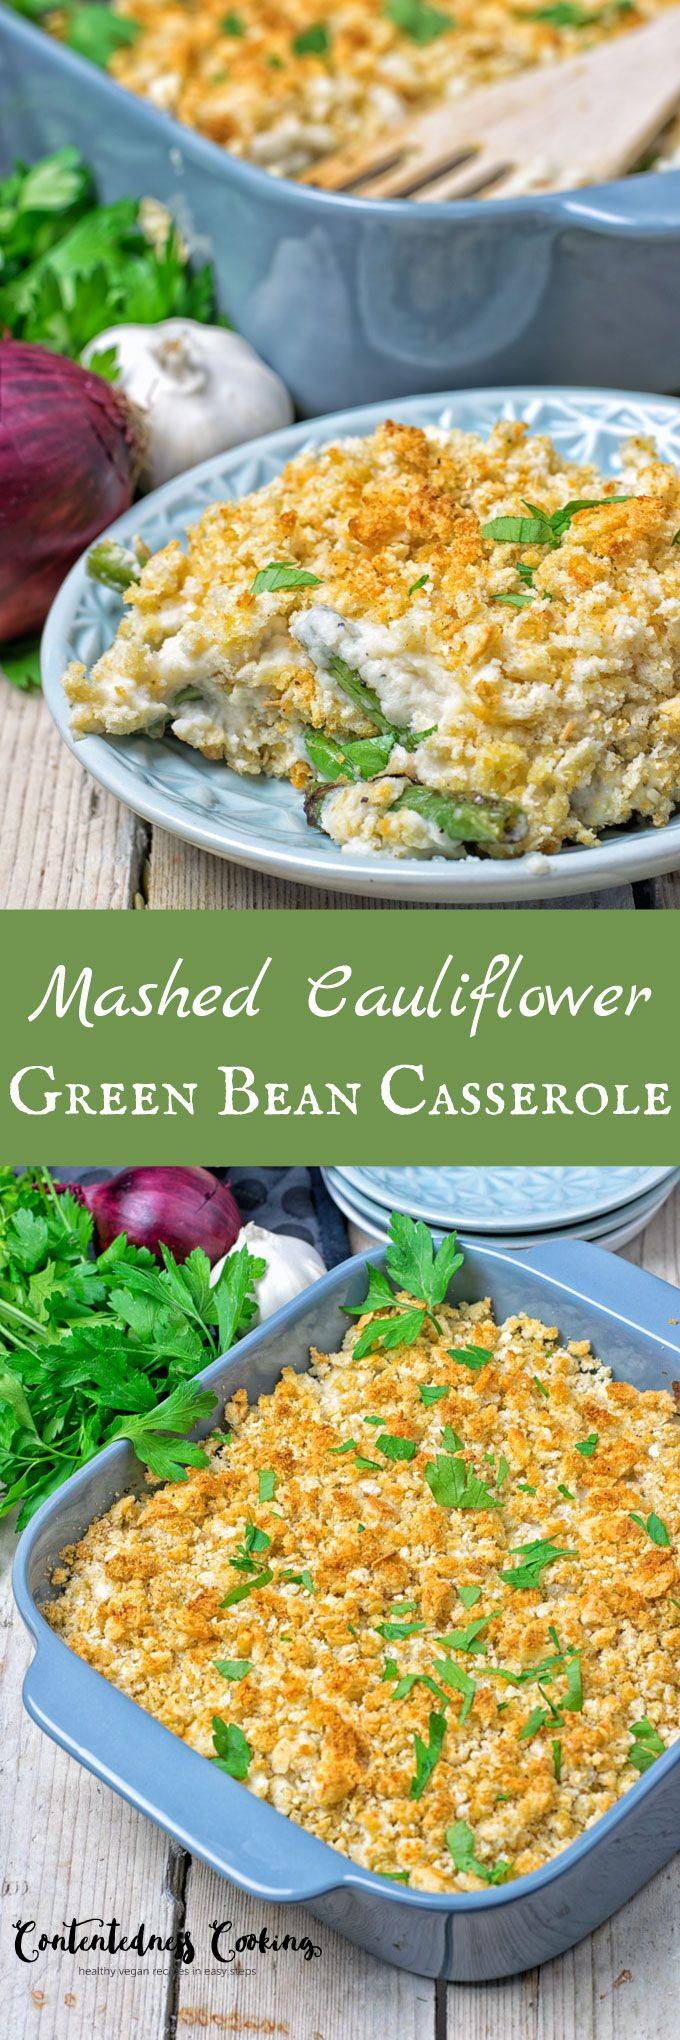 Mashed Cauliflower Green Bean Casserole | #vegan #glutenfree #contentednesscooking